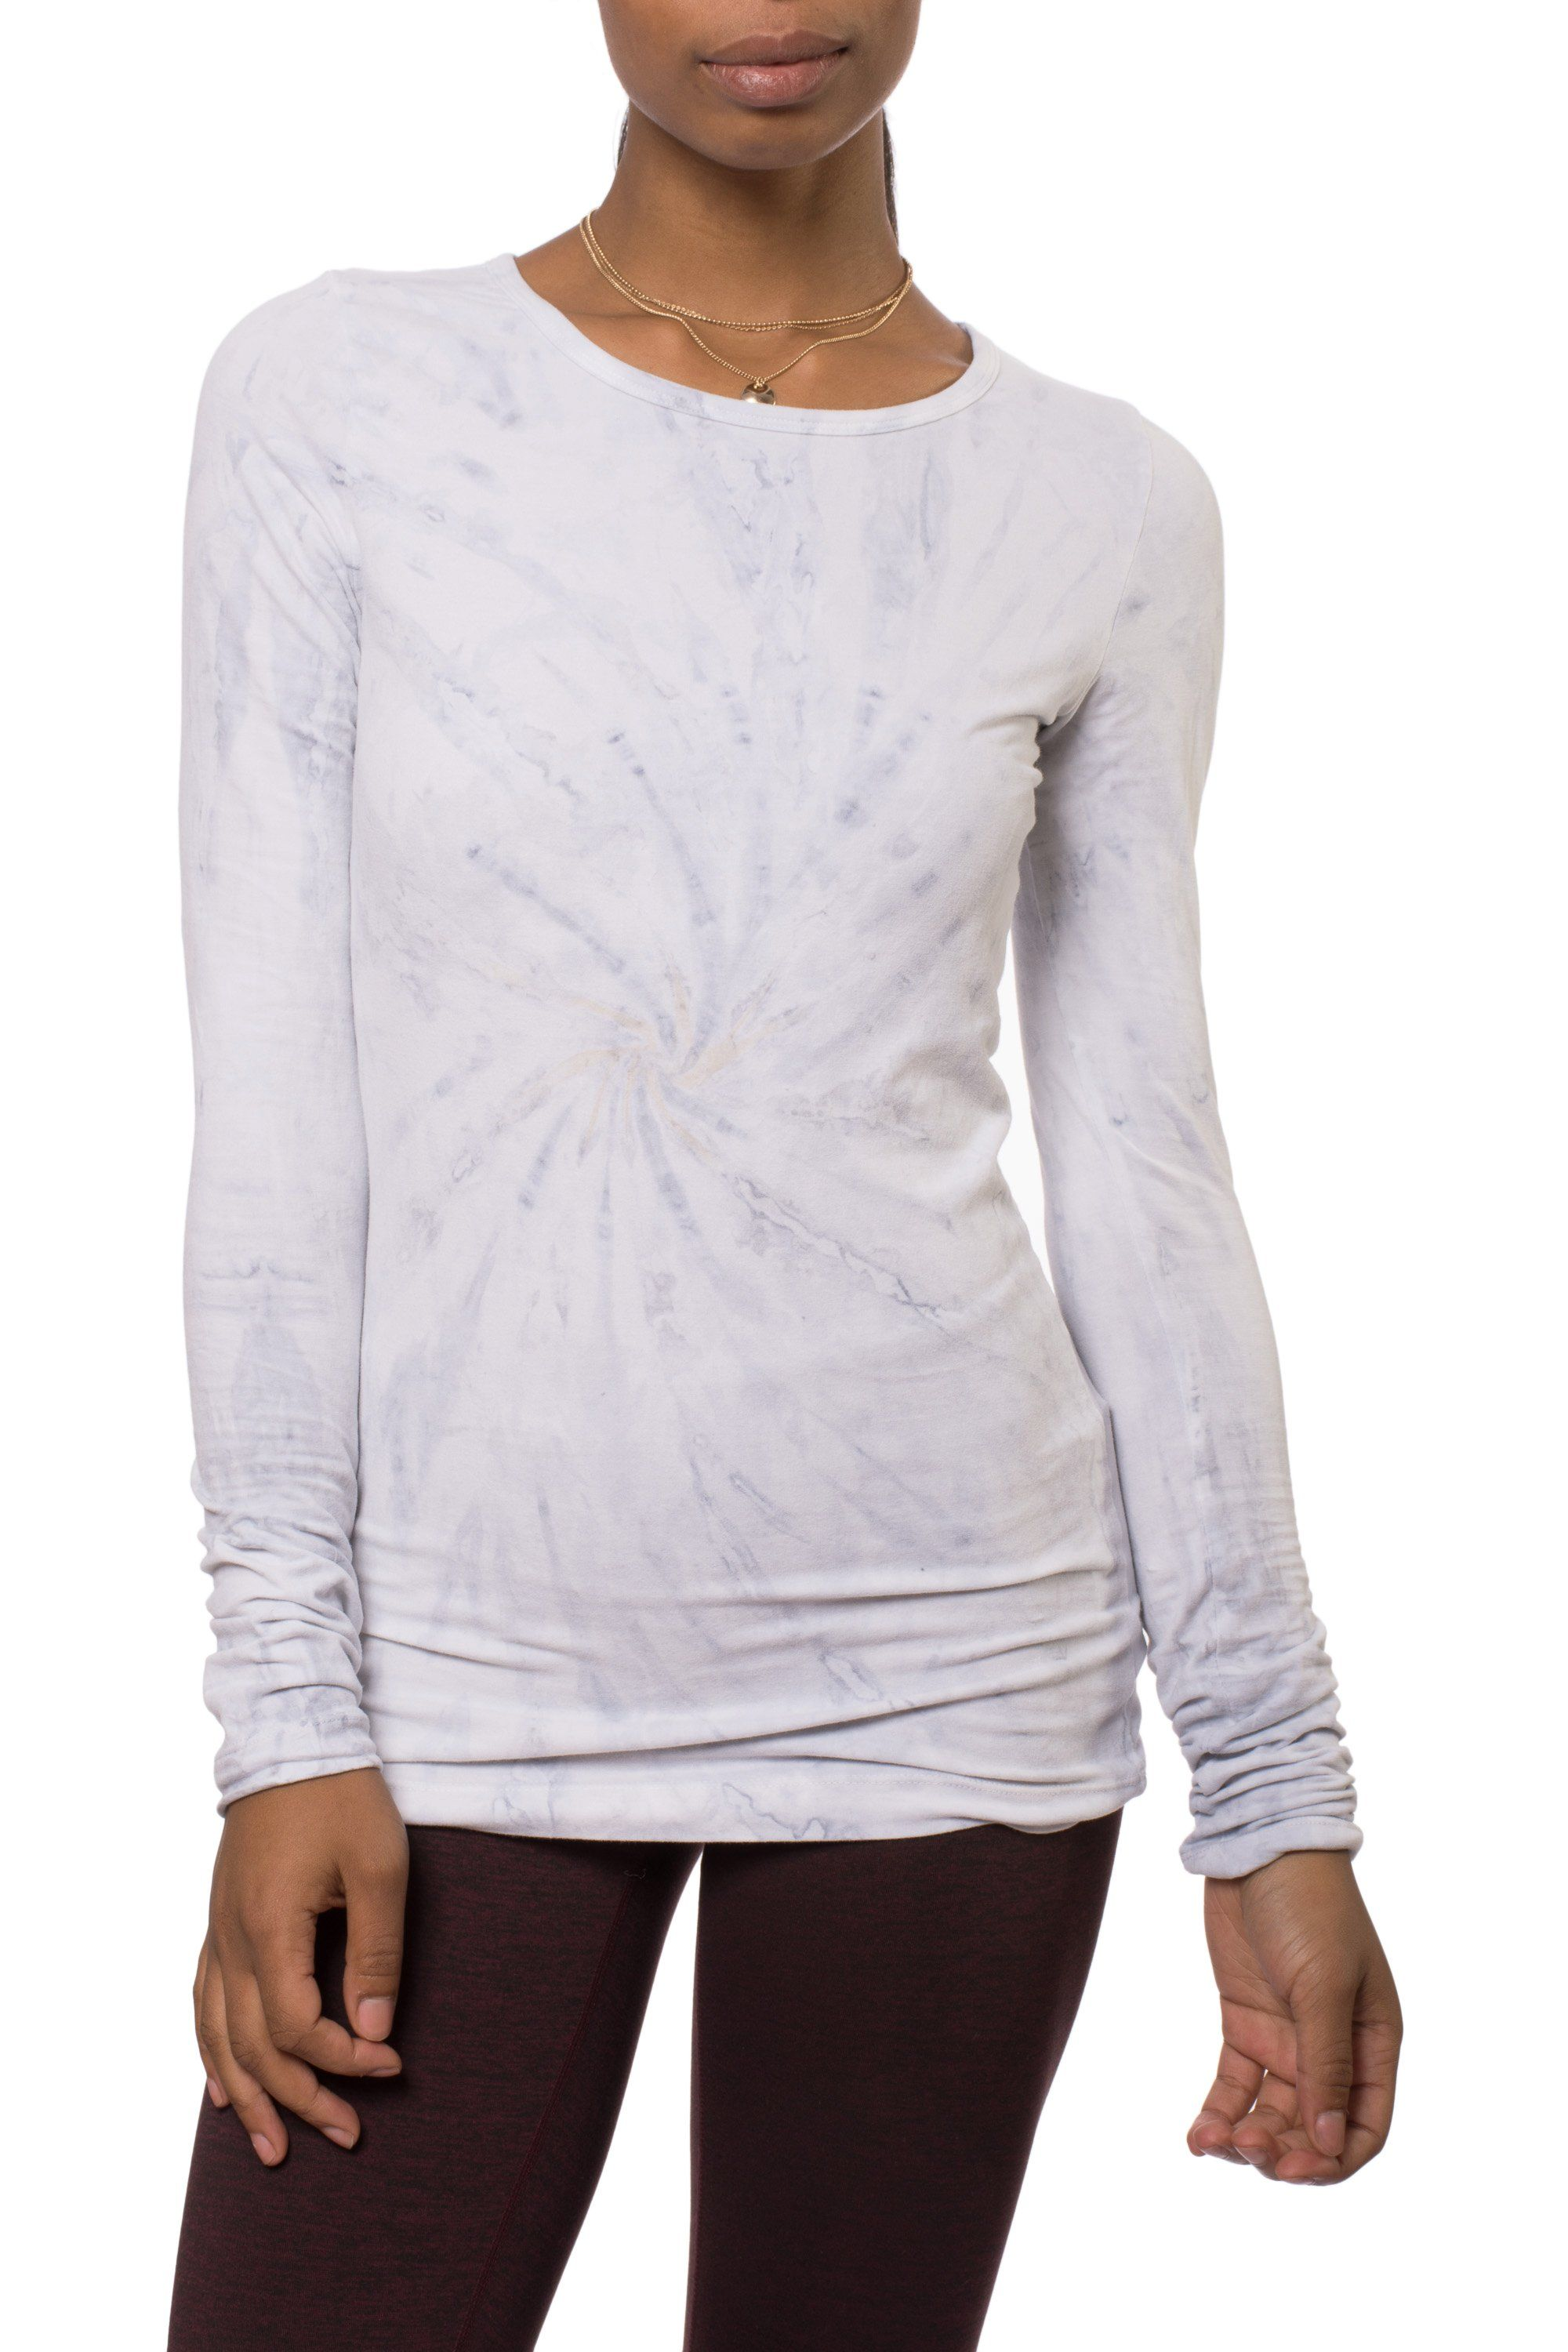 Supima/Lycra Long Sleeve Scoop Tee (Style SL-69, Tie-Dye SMA2) by Hard Tail Forever